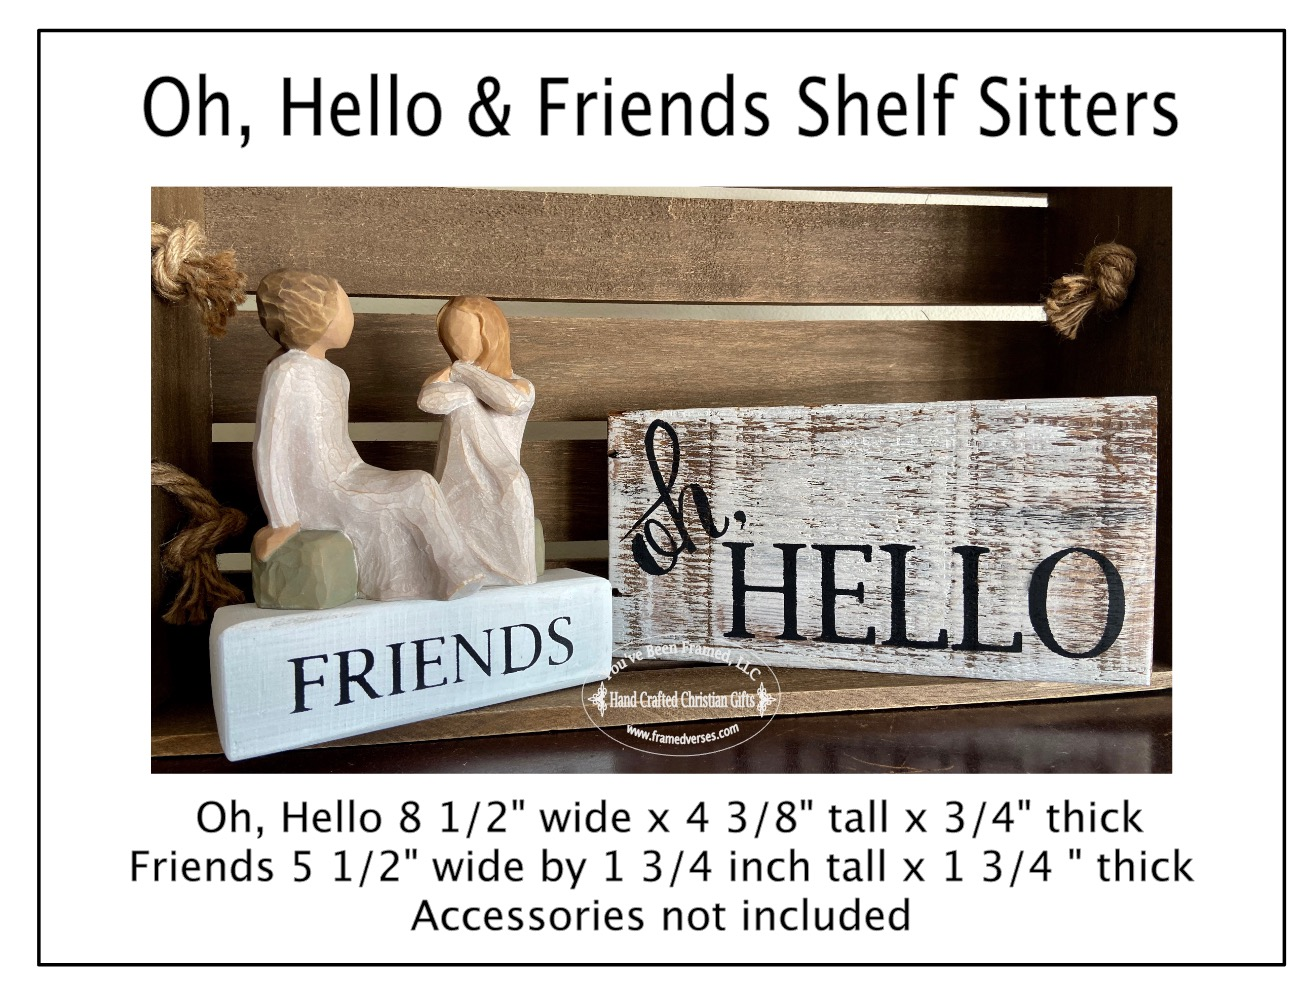 Oh, Hello and Friends Shelf Sitter Group